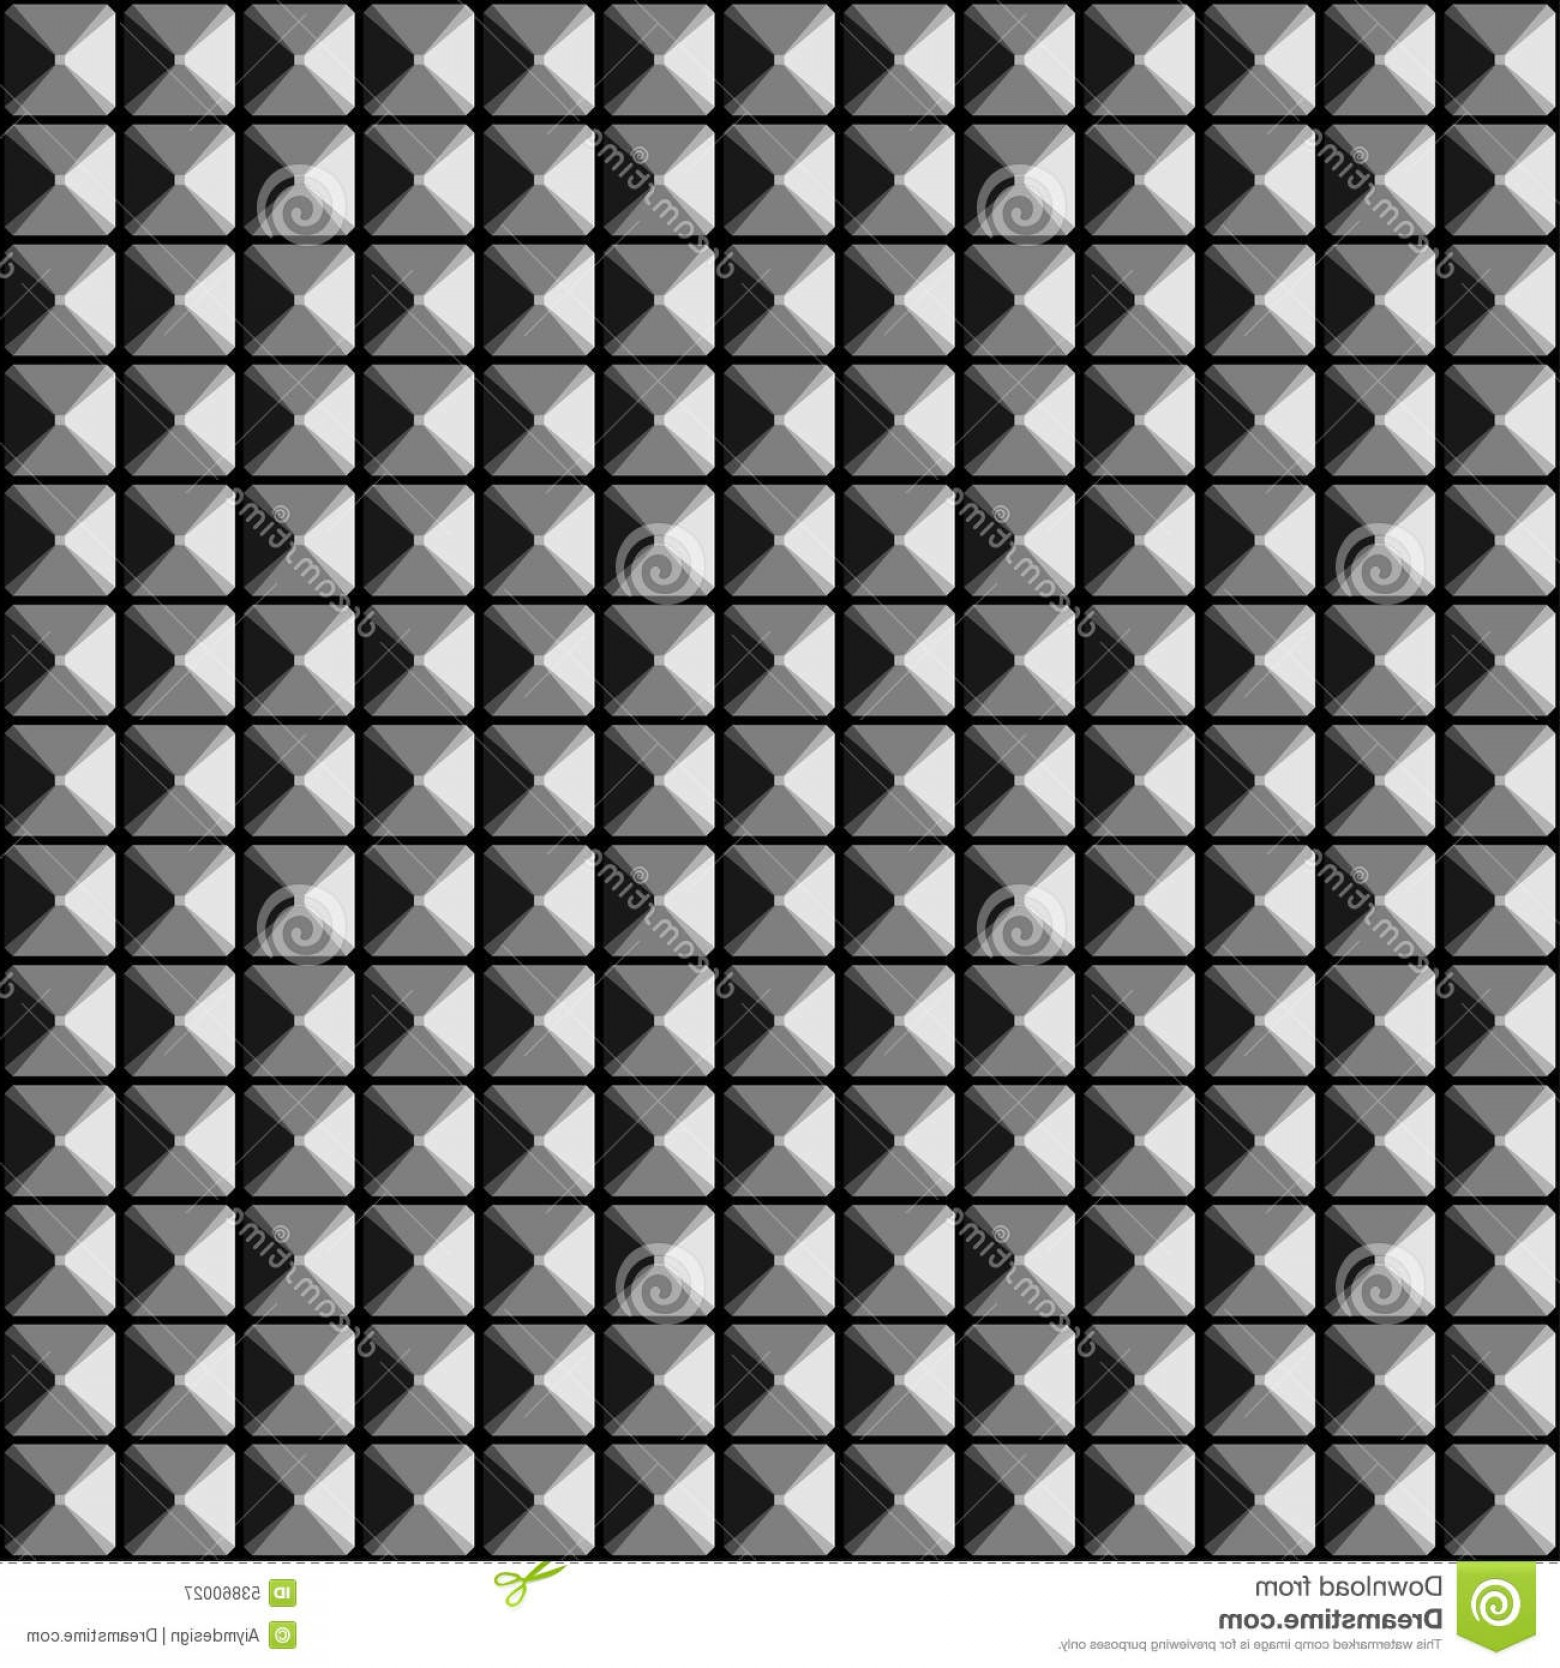 Pyramid Stud Vector: Stock Illustration Studded Surface Seamless Pattern Grayscale Image